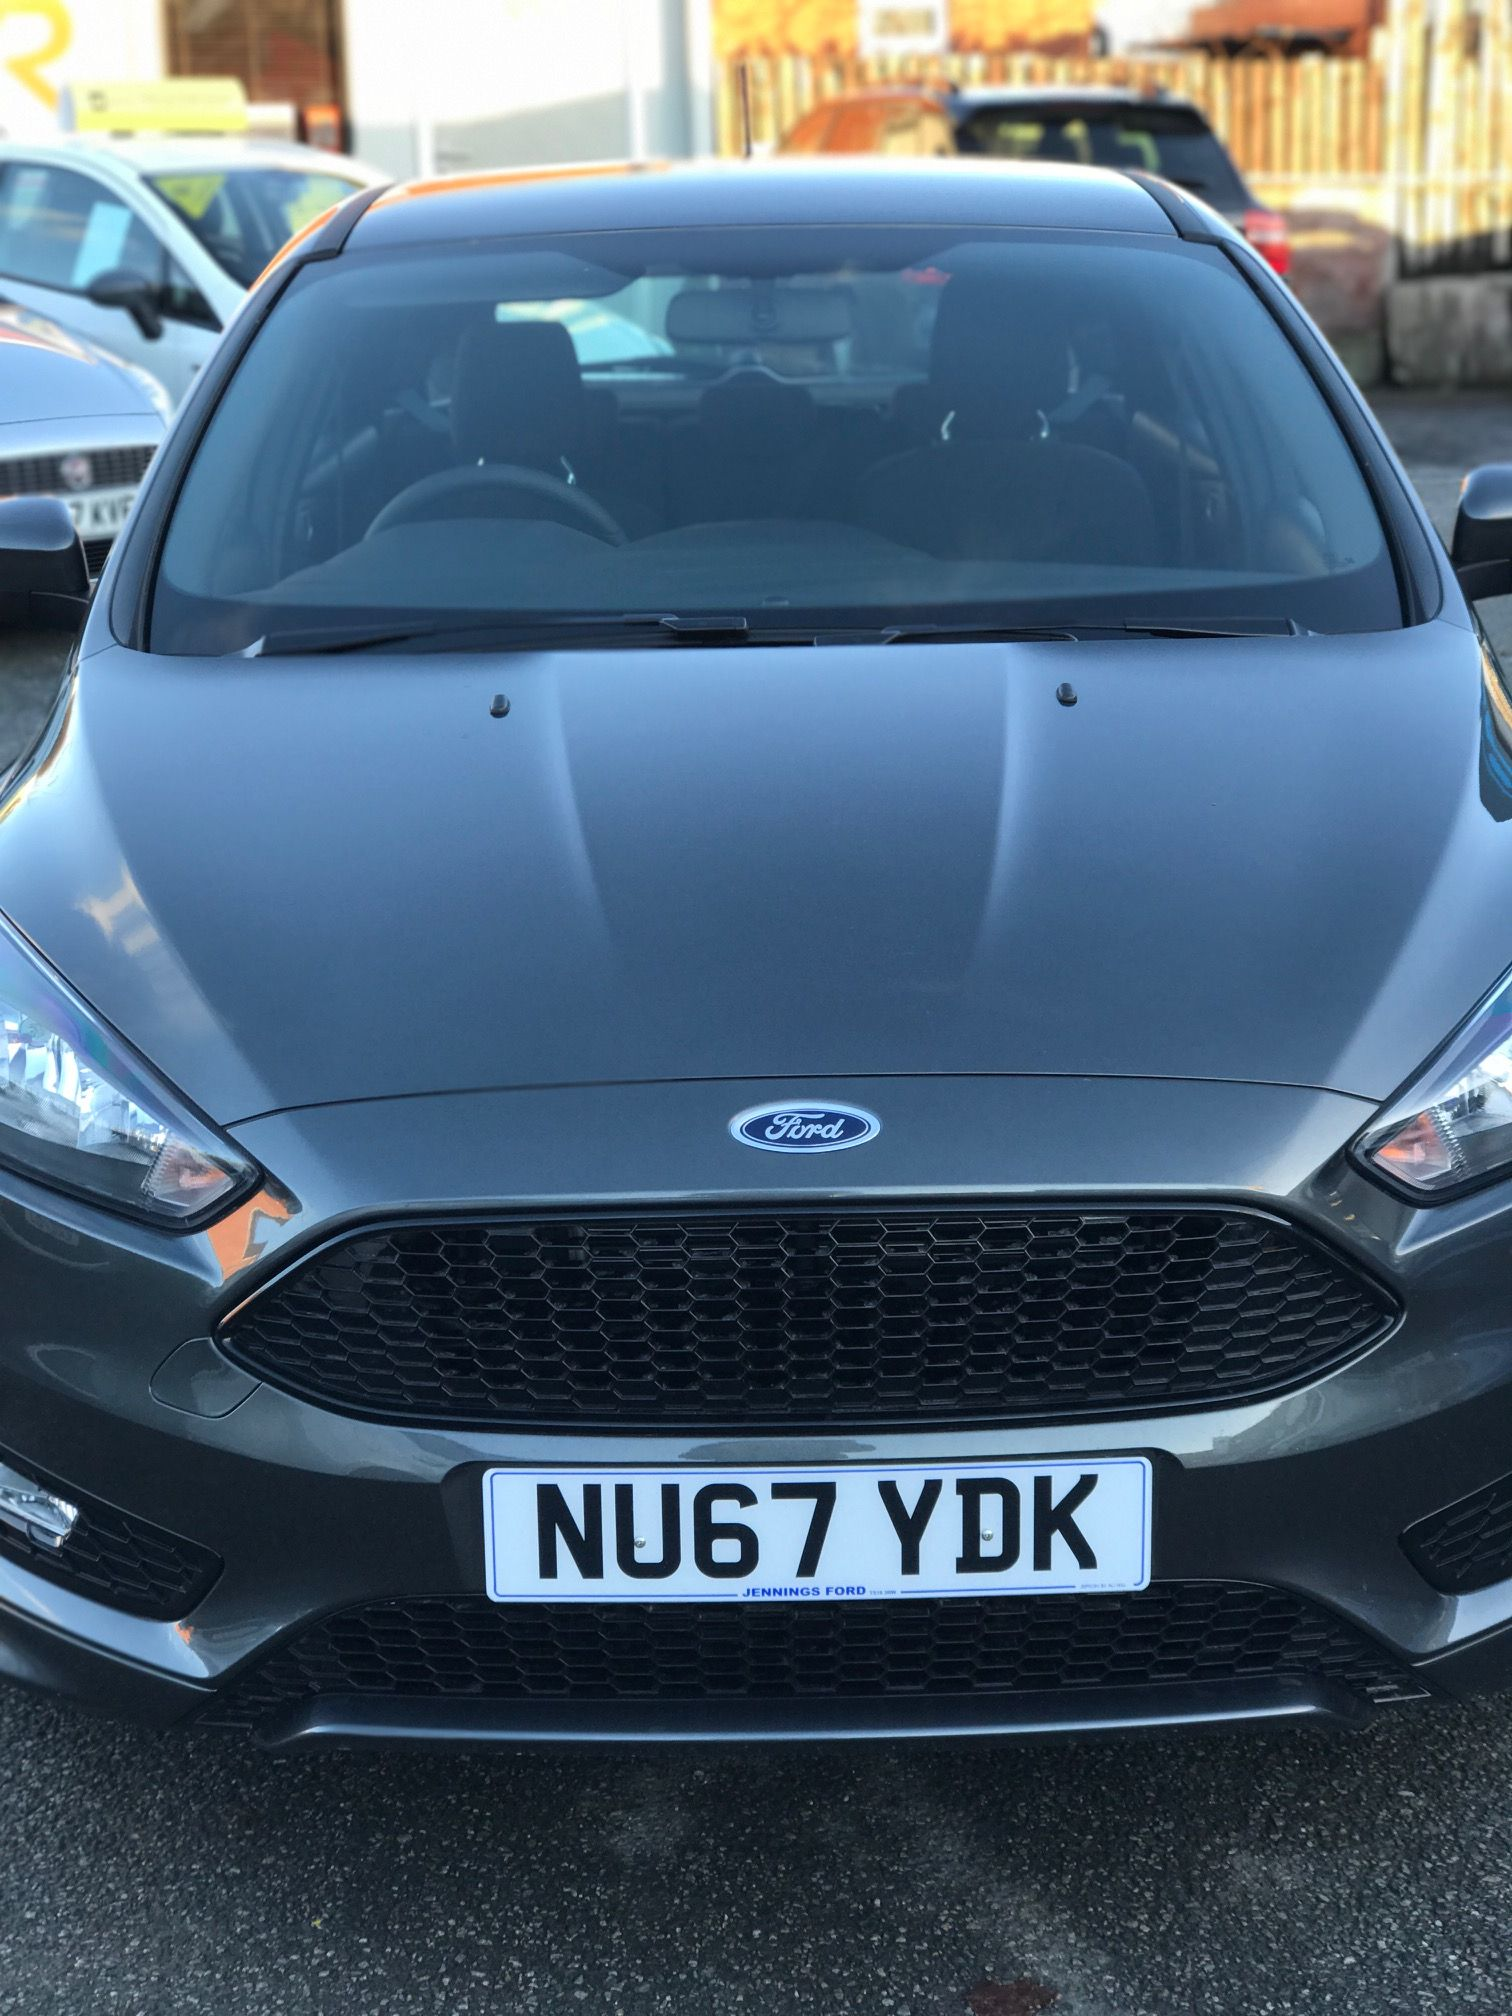 The Ford Focus leasing deal One of the many cars and